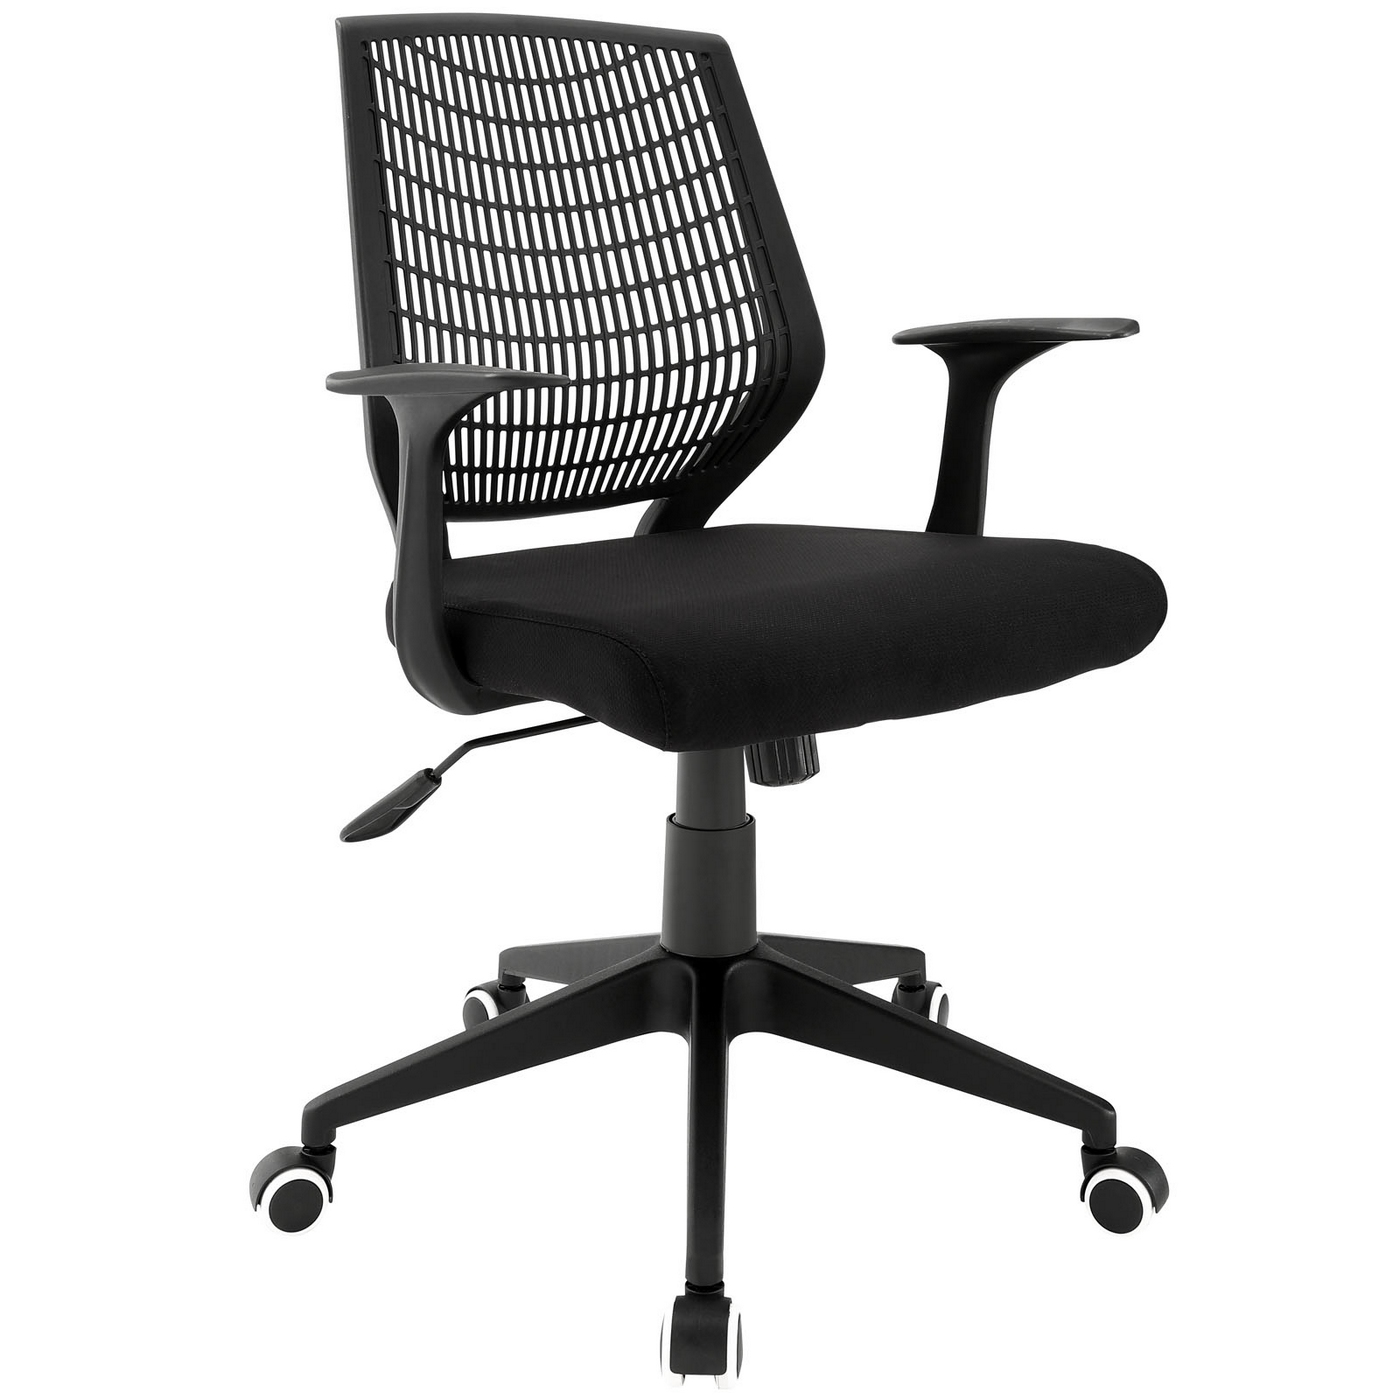 Entrada Contemporary Padded Mesh Office Chair With Adjustable Height Black